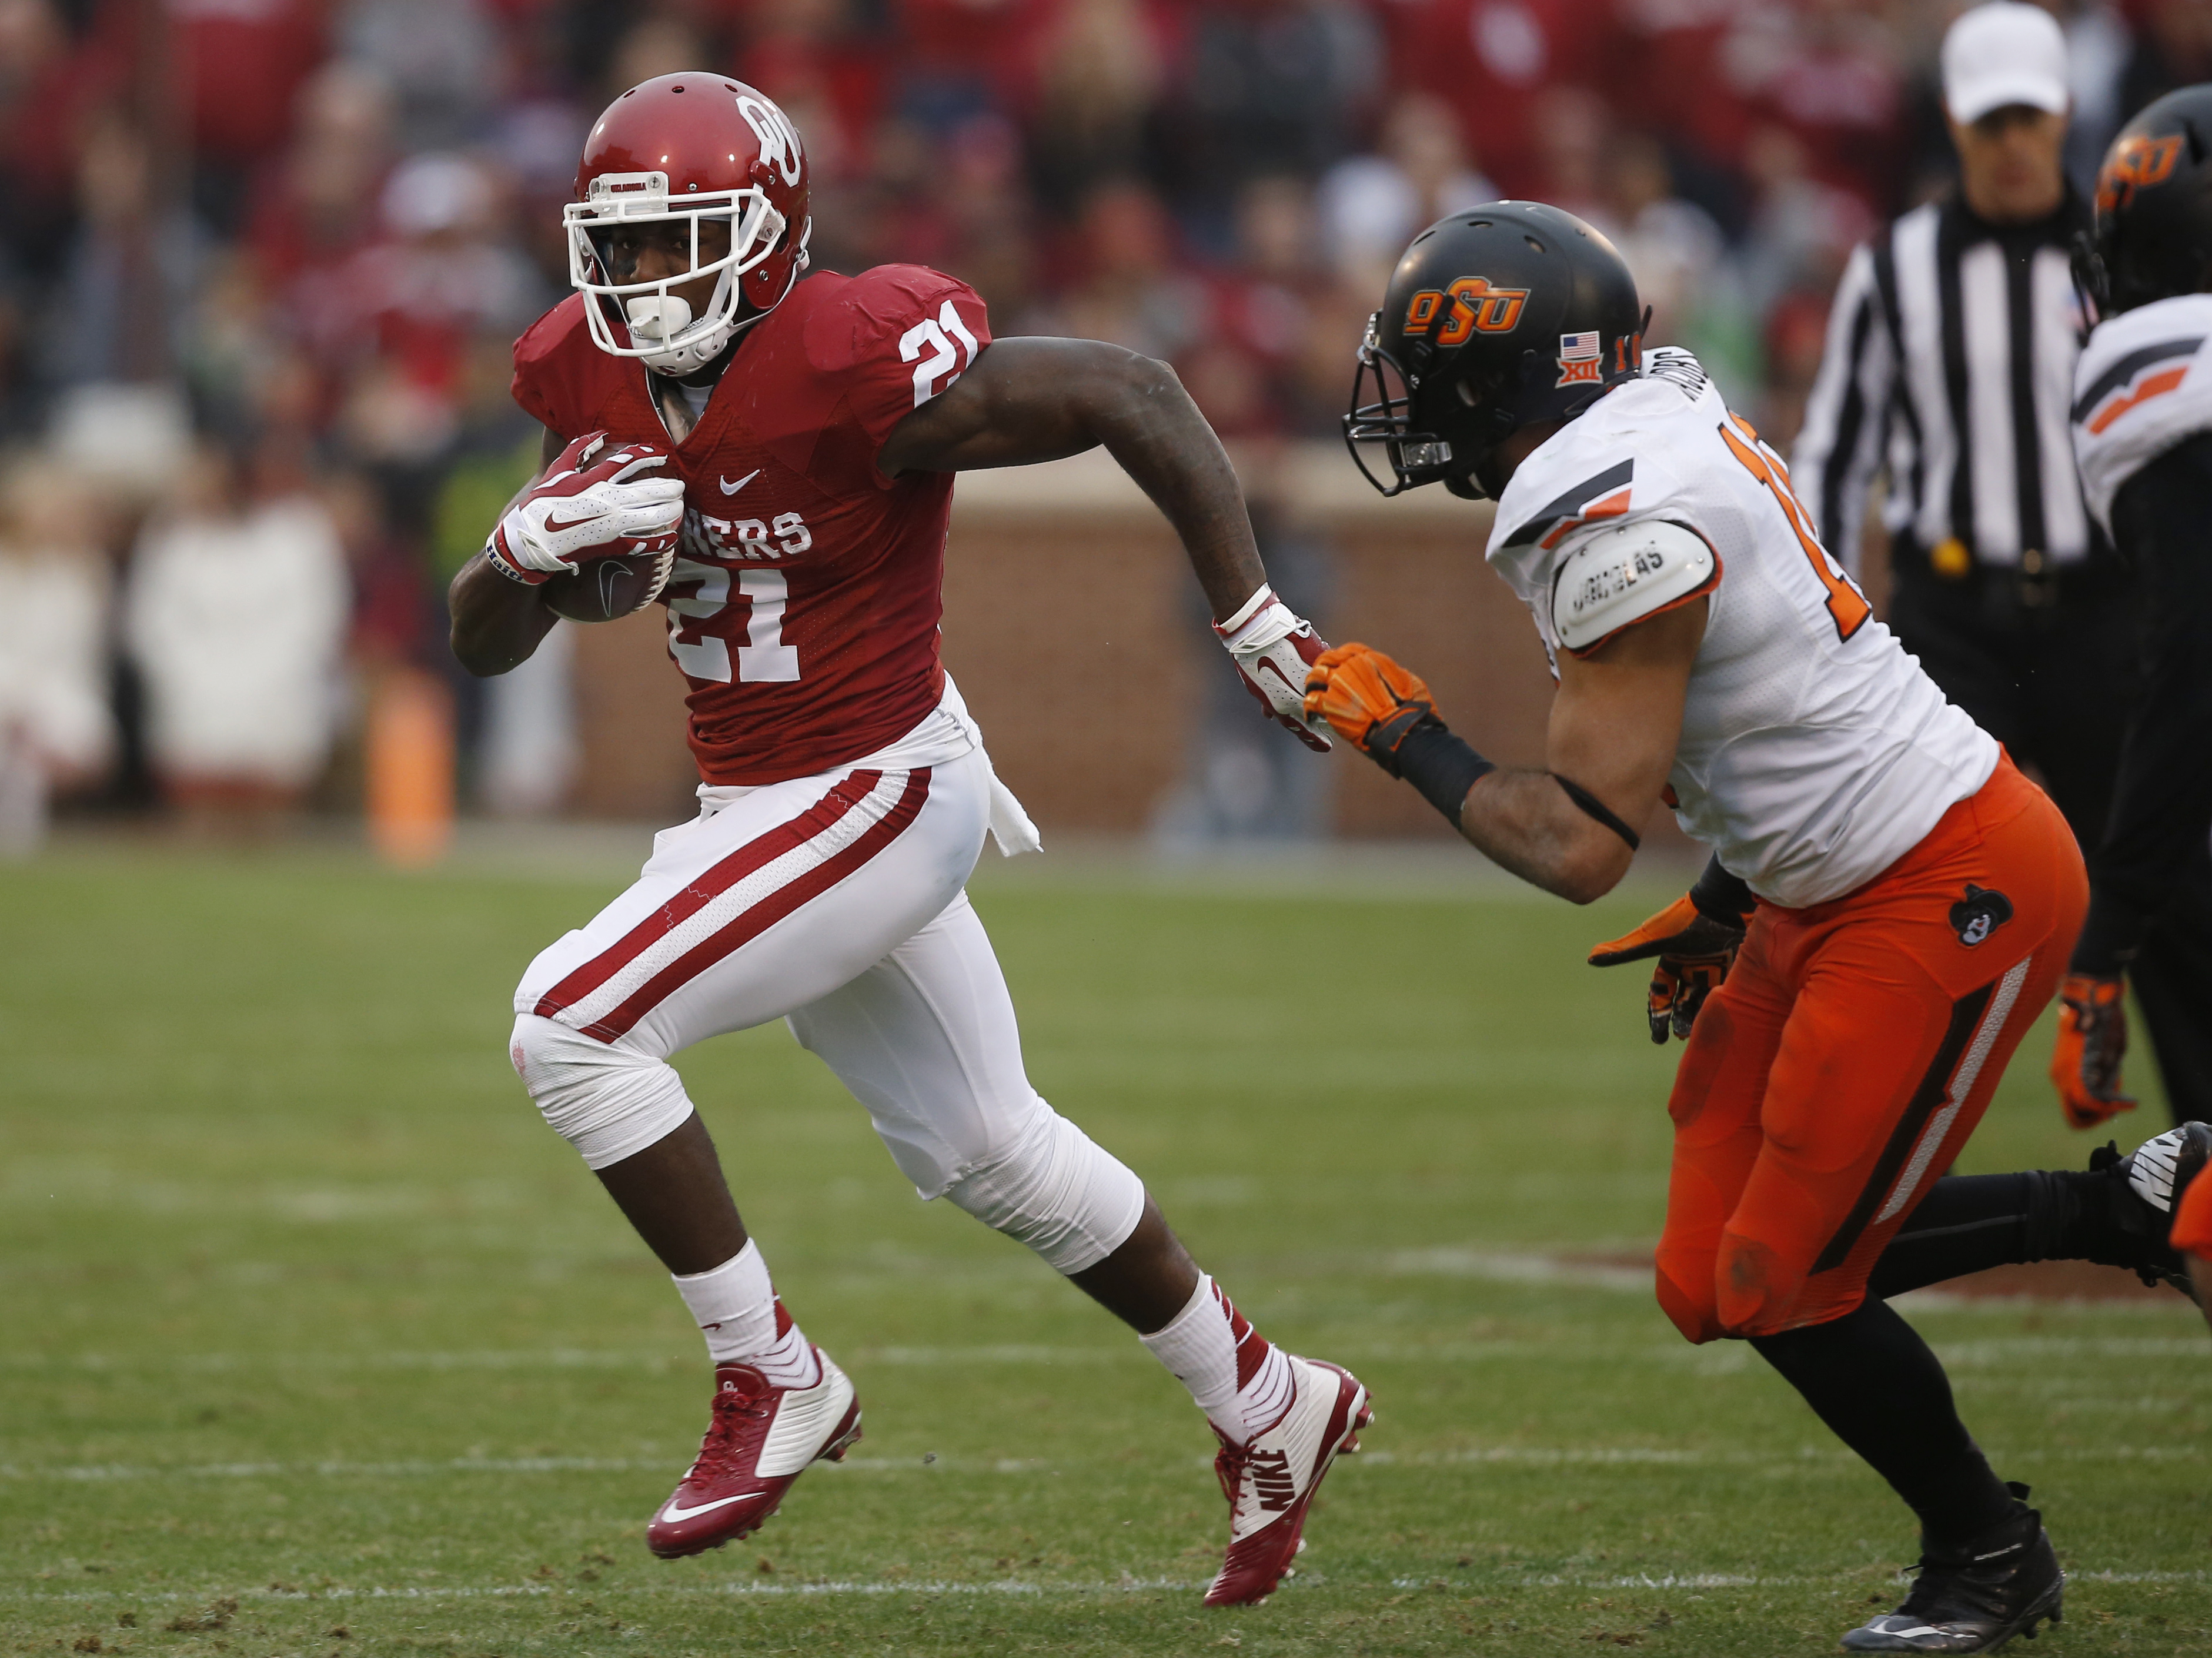 Oklahoma running back Keith Ford (21) carries past Oklahoma State cornerback Ramon Richards (18) during an NCAA college football game between Oklahoma State and Oklahoma in Norman, Okla., Saturday, Dec. 6, 2014. (AP Photo/Sue Ogrocki)